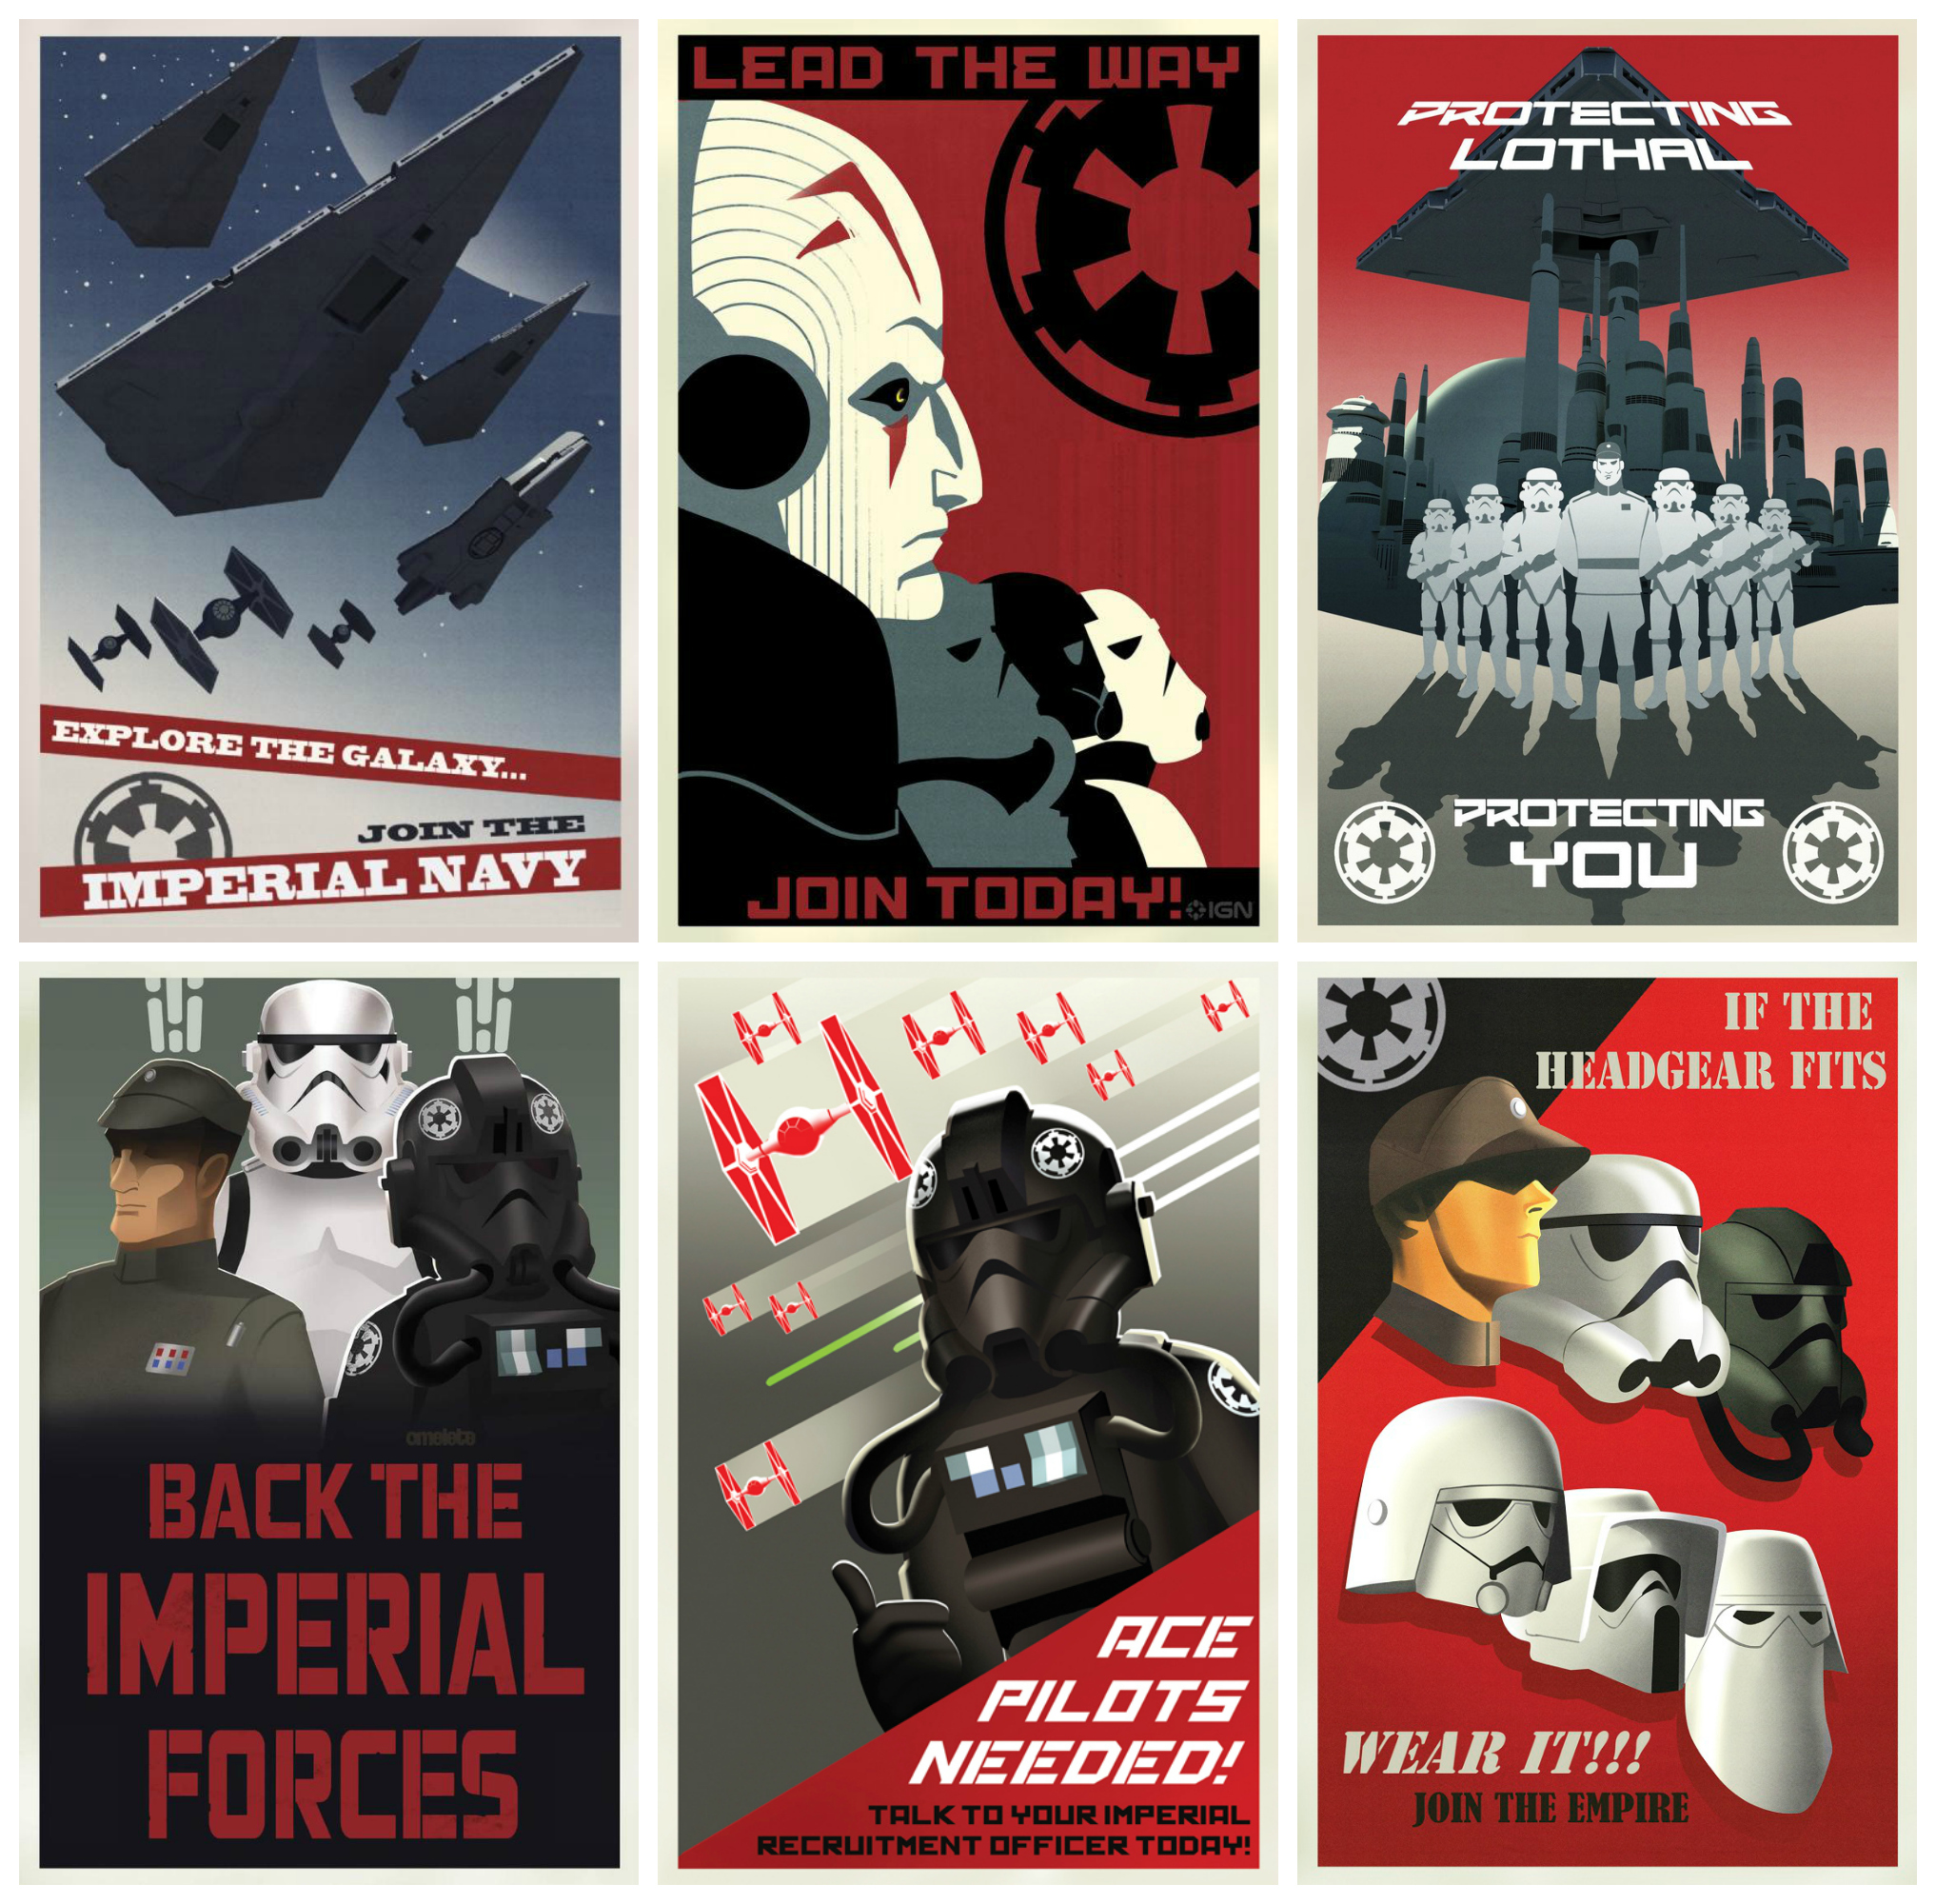 Star Wars Rebels Imperial Recruitment Posters